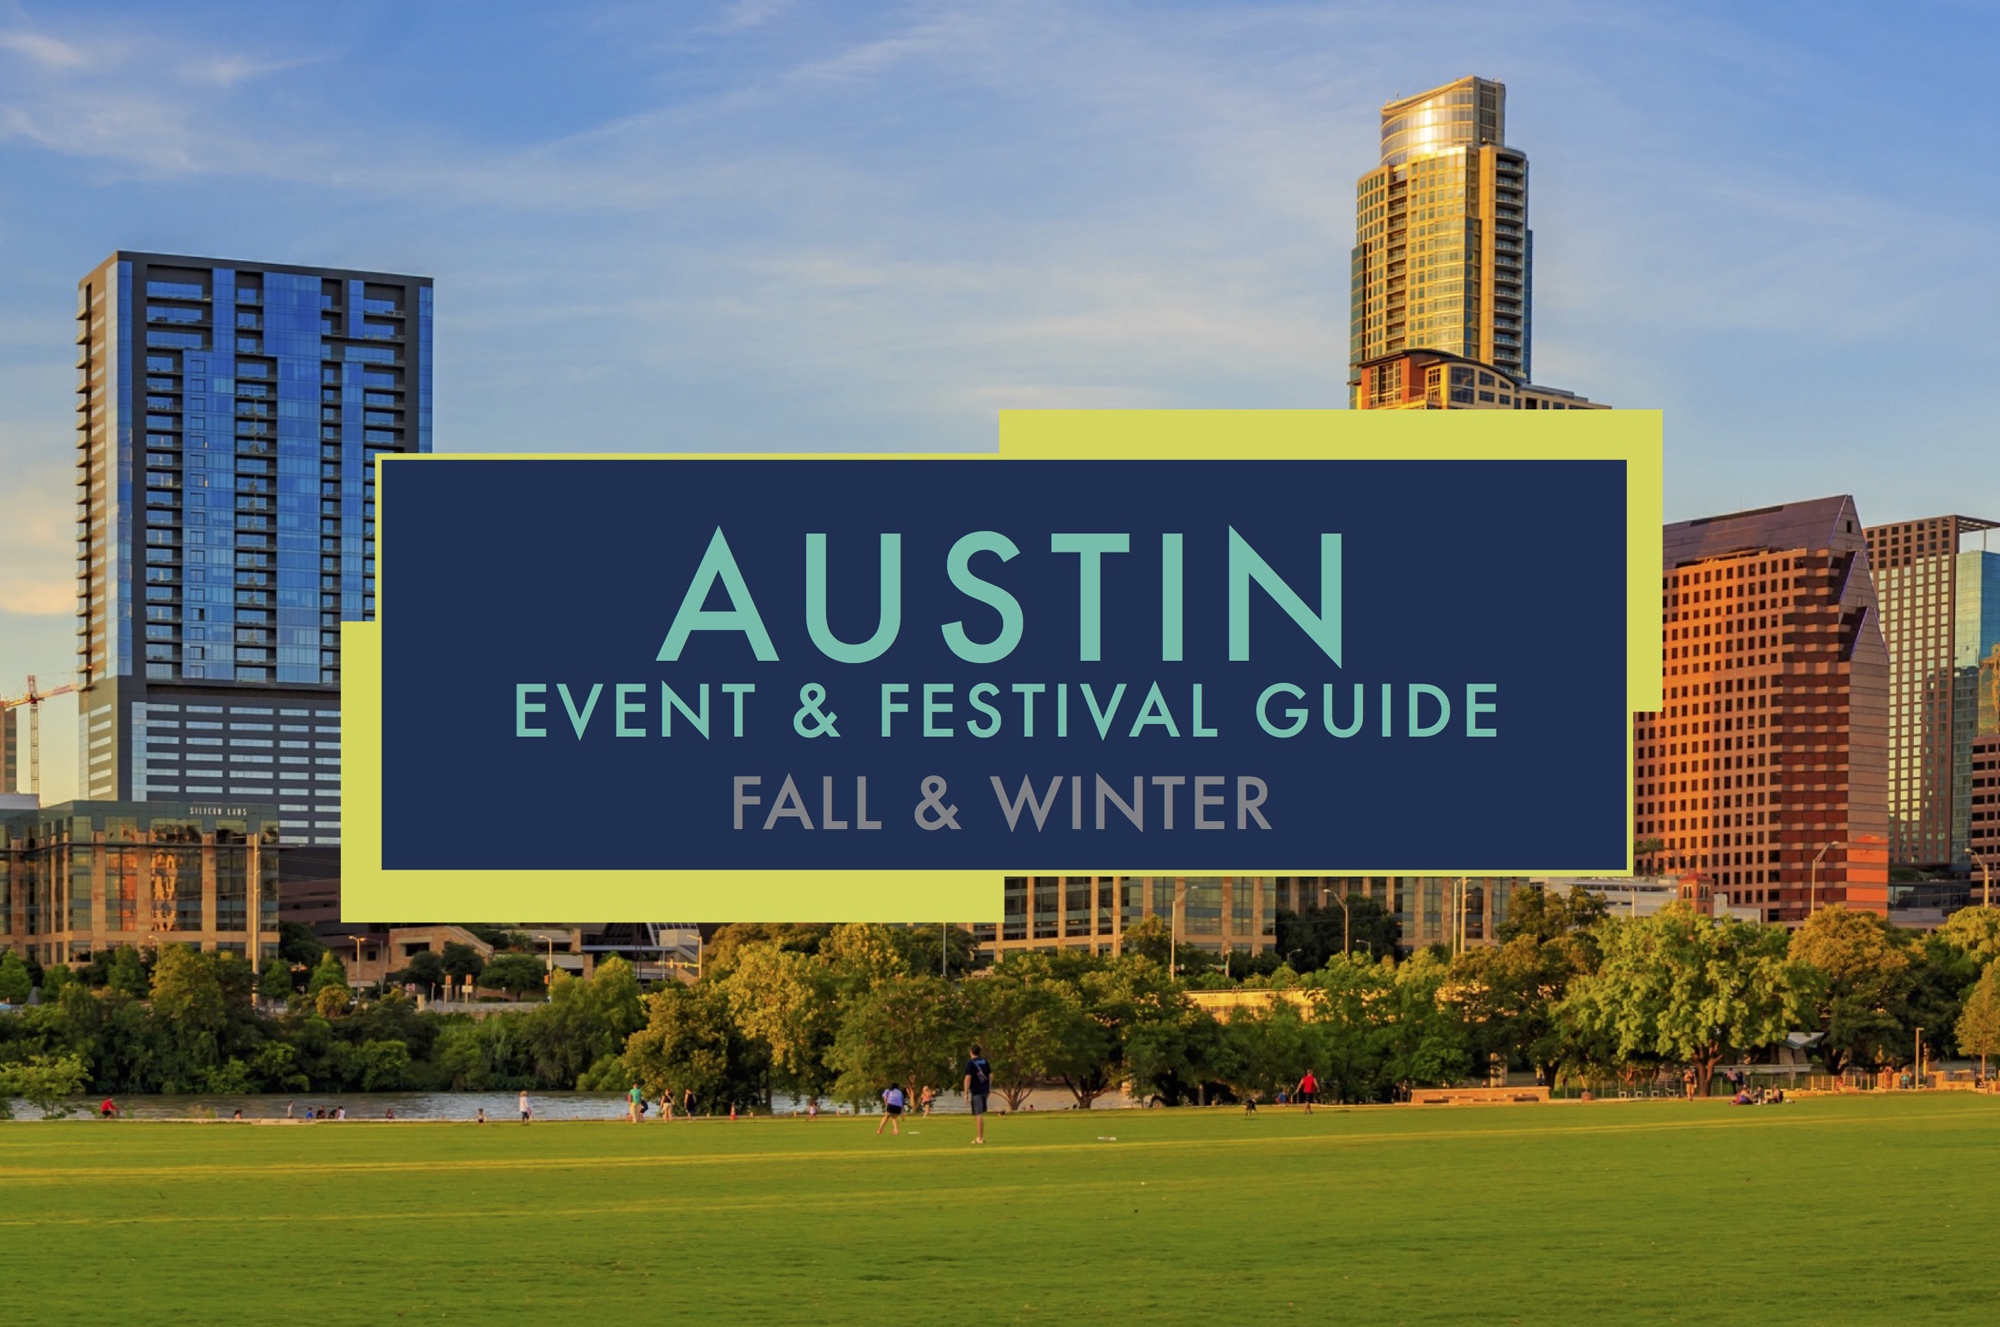 Austin-Event-Festival-Guide-Fall-Winter-Graphic-Prism-Realty